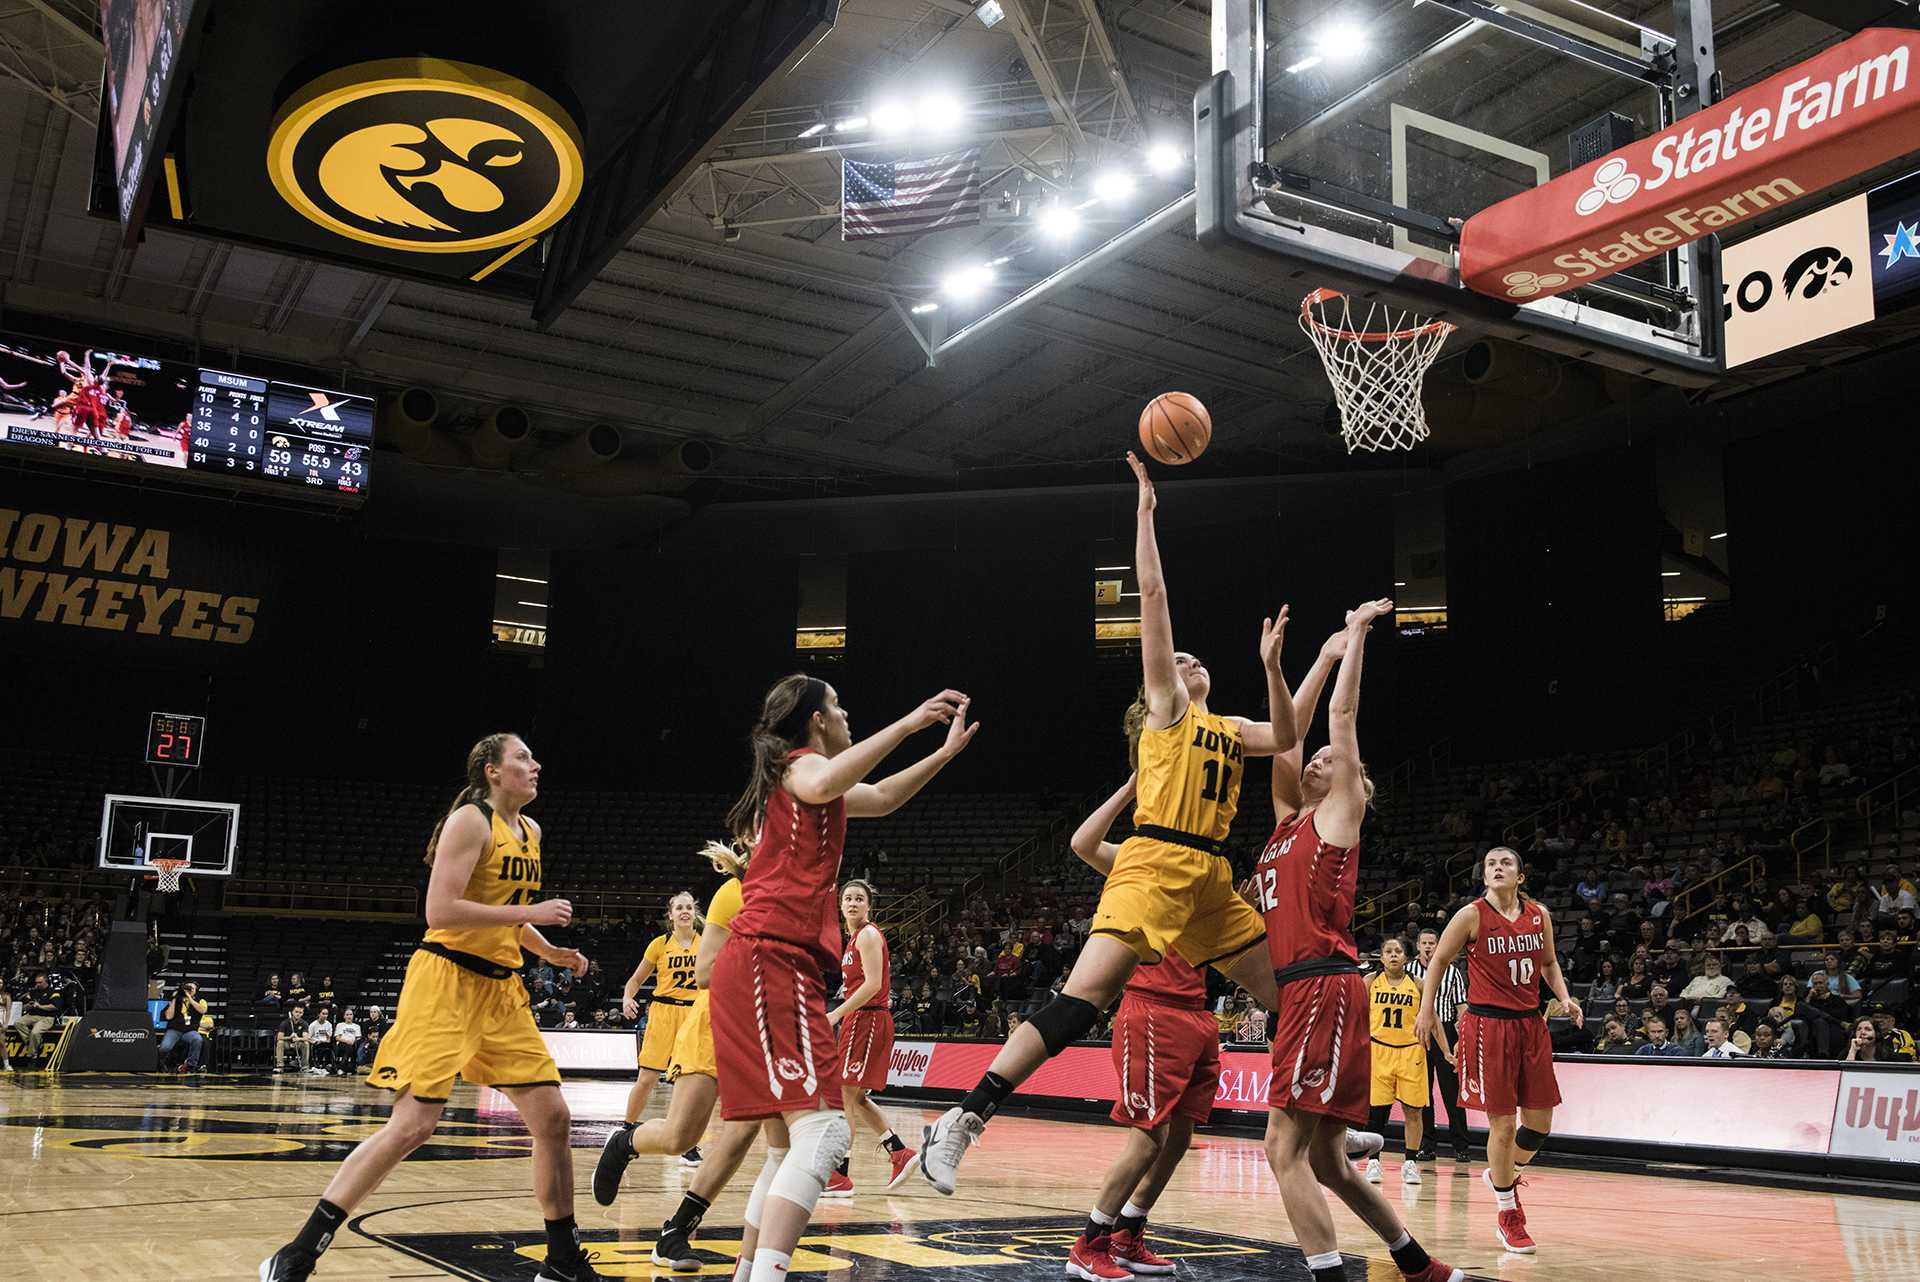 Iowa center Megan Gustafson (10) drives for a layup during the women's basketball game between Iowa and Minnesota State at Carver-Hawkeye Arena on Sunday, Nov. 5, 2017. The Hawkeyes beat the Dragons 85-56. (Ben Smith/The Daily Iowan)